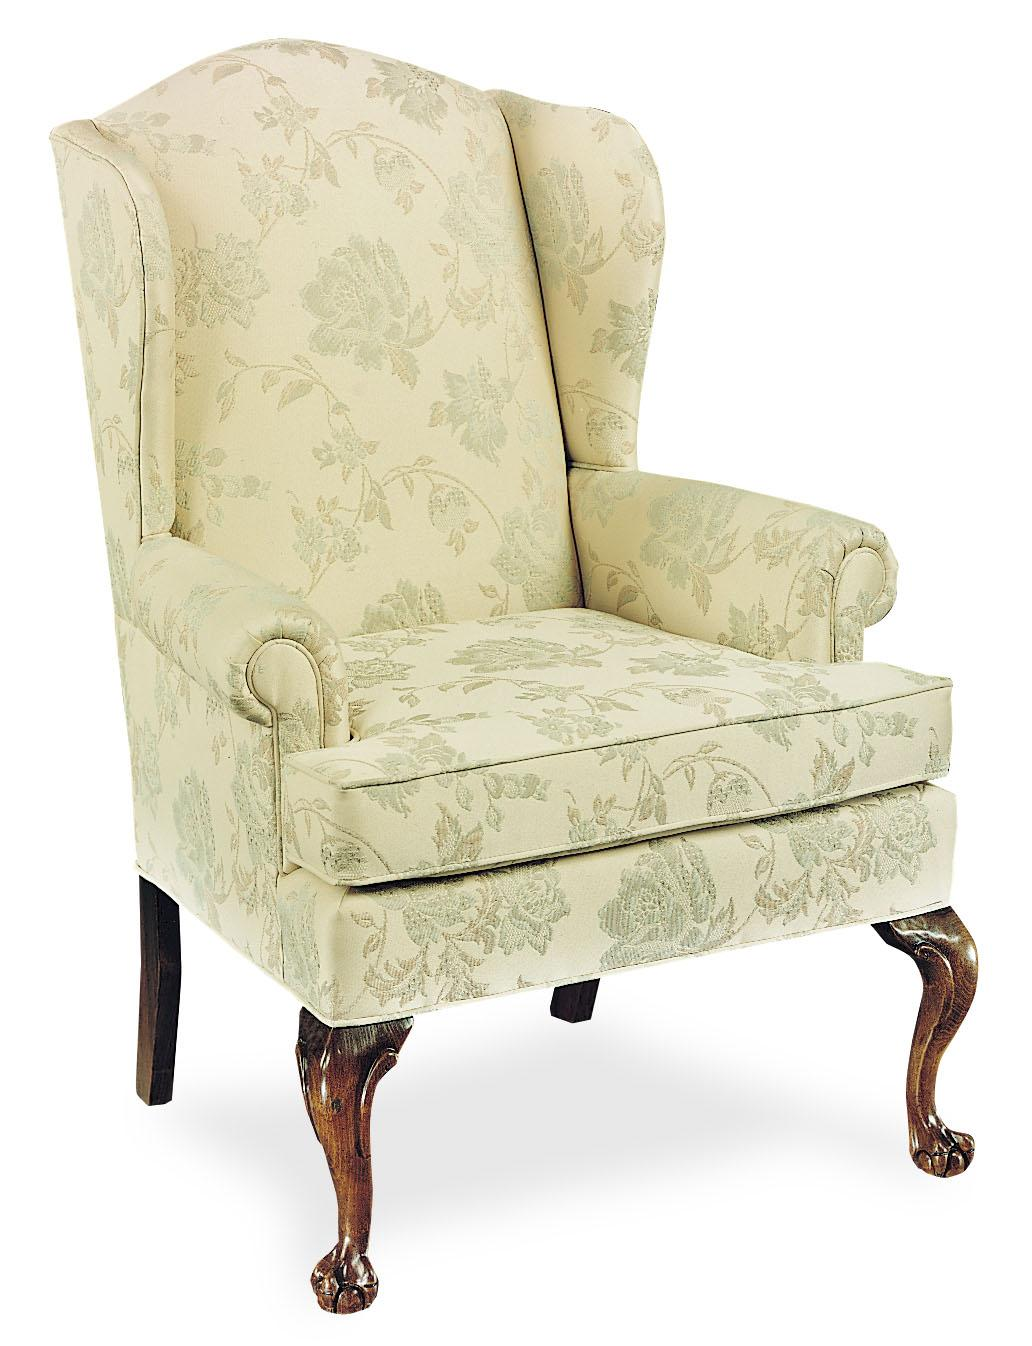 Fairfield Chairs Upholstered Wing Chair - Item Number: 5129-01